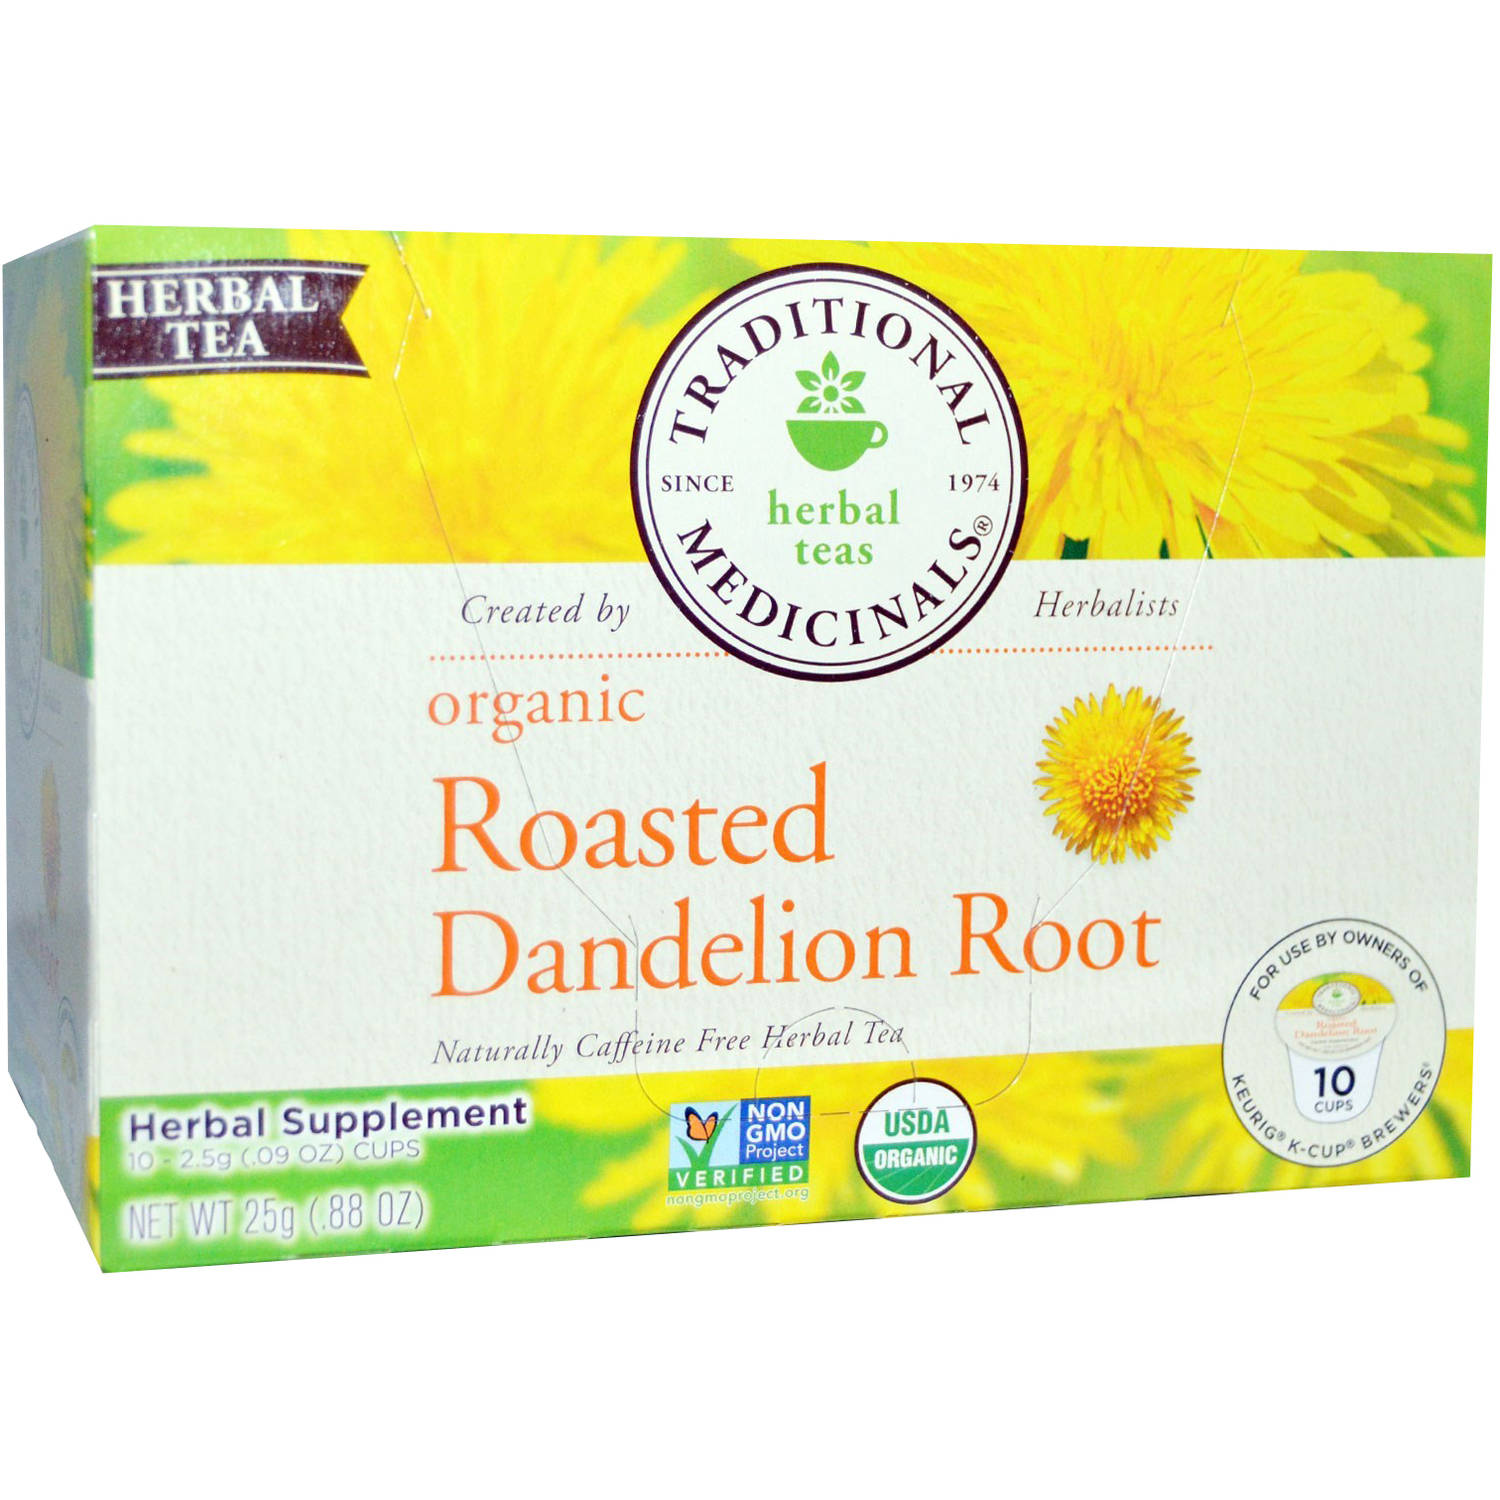 Traditional Medicinals Organic Roasted Dandelion Root Tea K - Cups, 10 count, (Pack of 3)